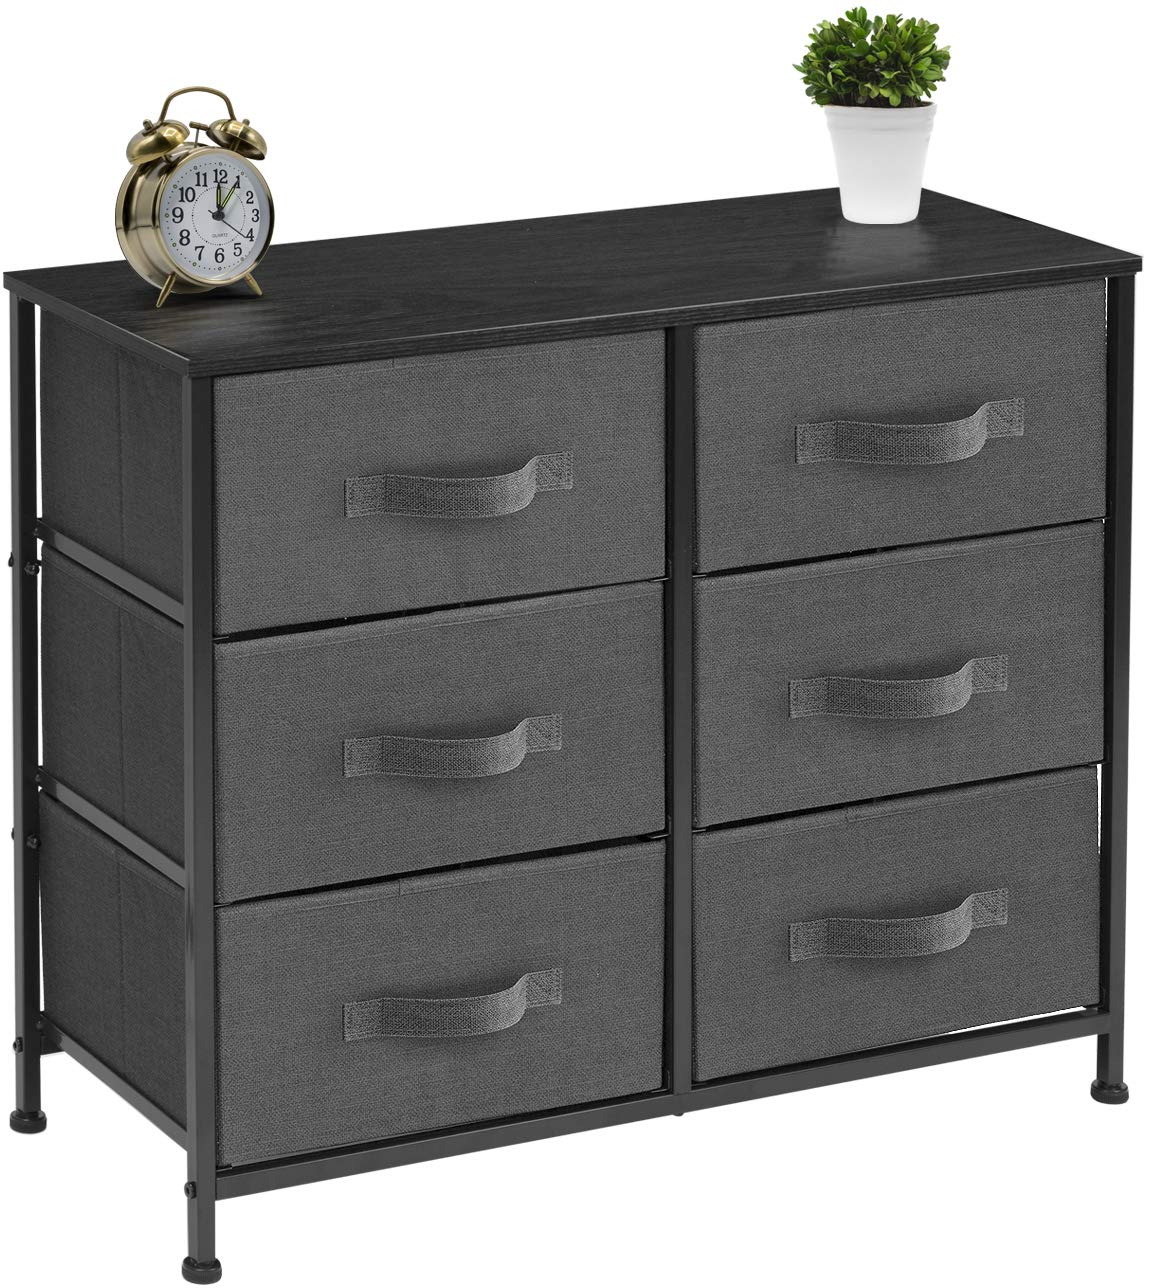 Hallway Beige Furniture Storage Tower Unit for Bedroom Closet Easy Pull Fabric Bins Wood Top Office Organization Steel Frame Sorbus Dresser with 6 Drawers